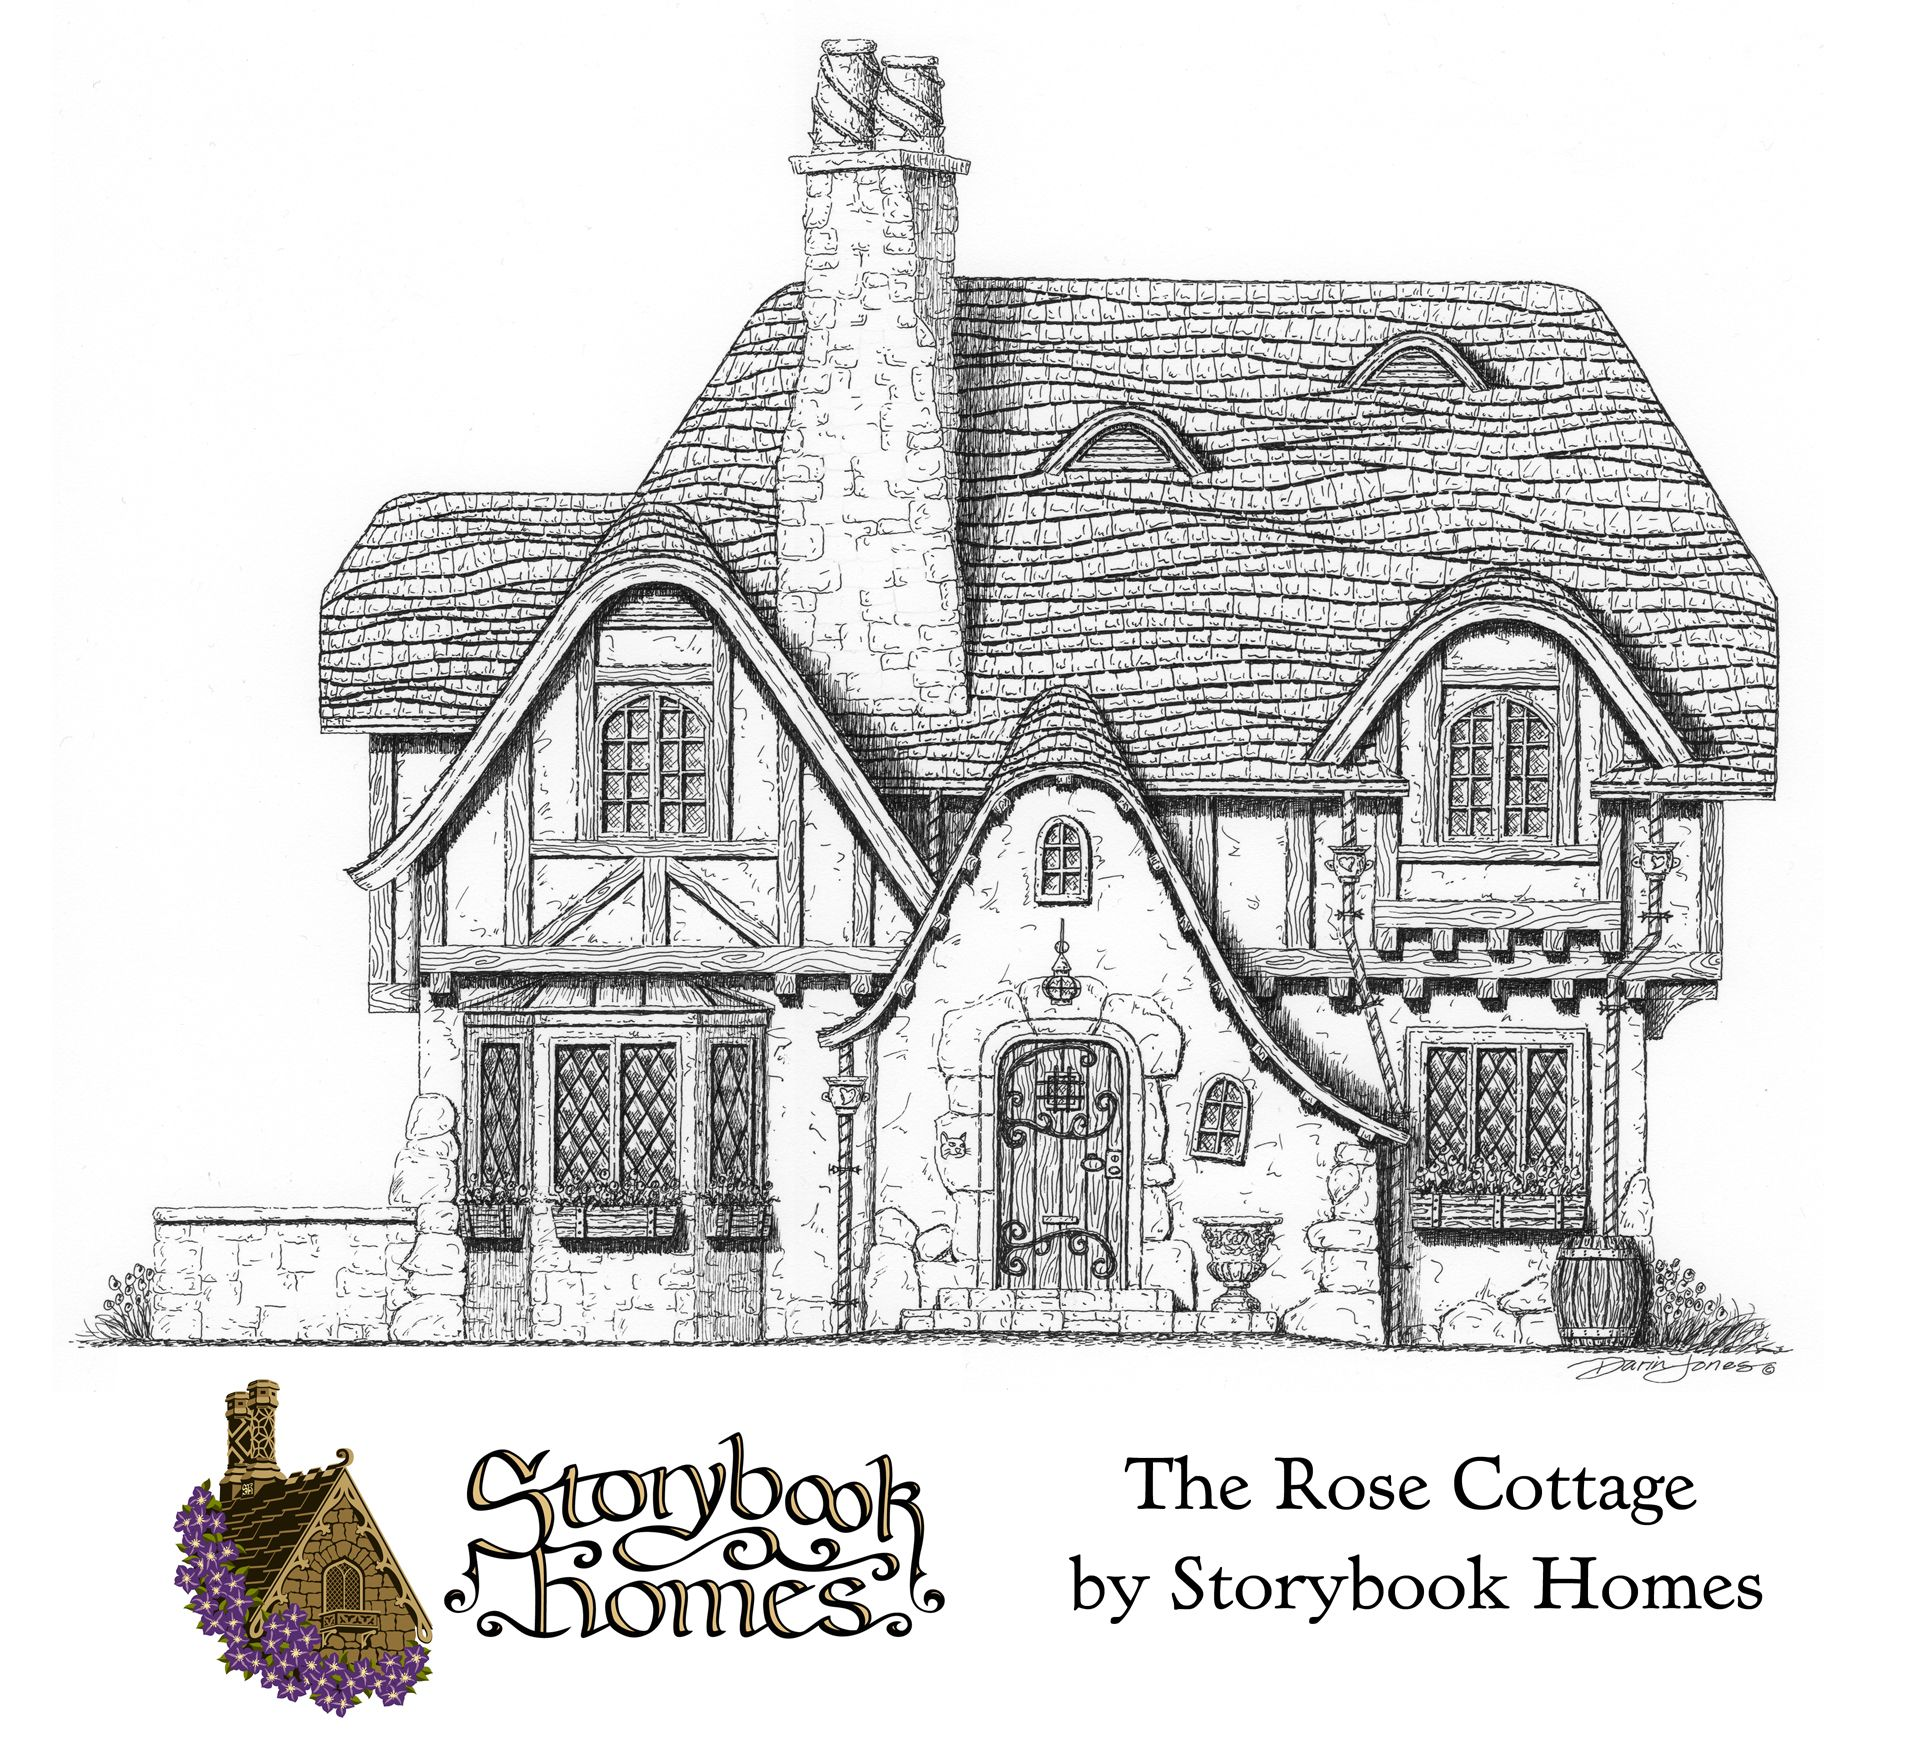 The Rose Cottage Designed By Storybook Homes In The Truly